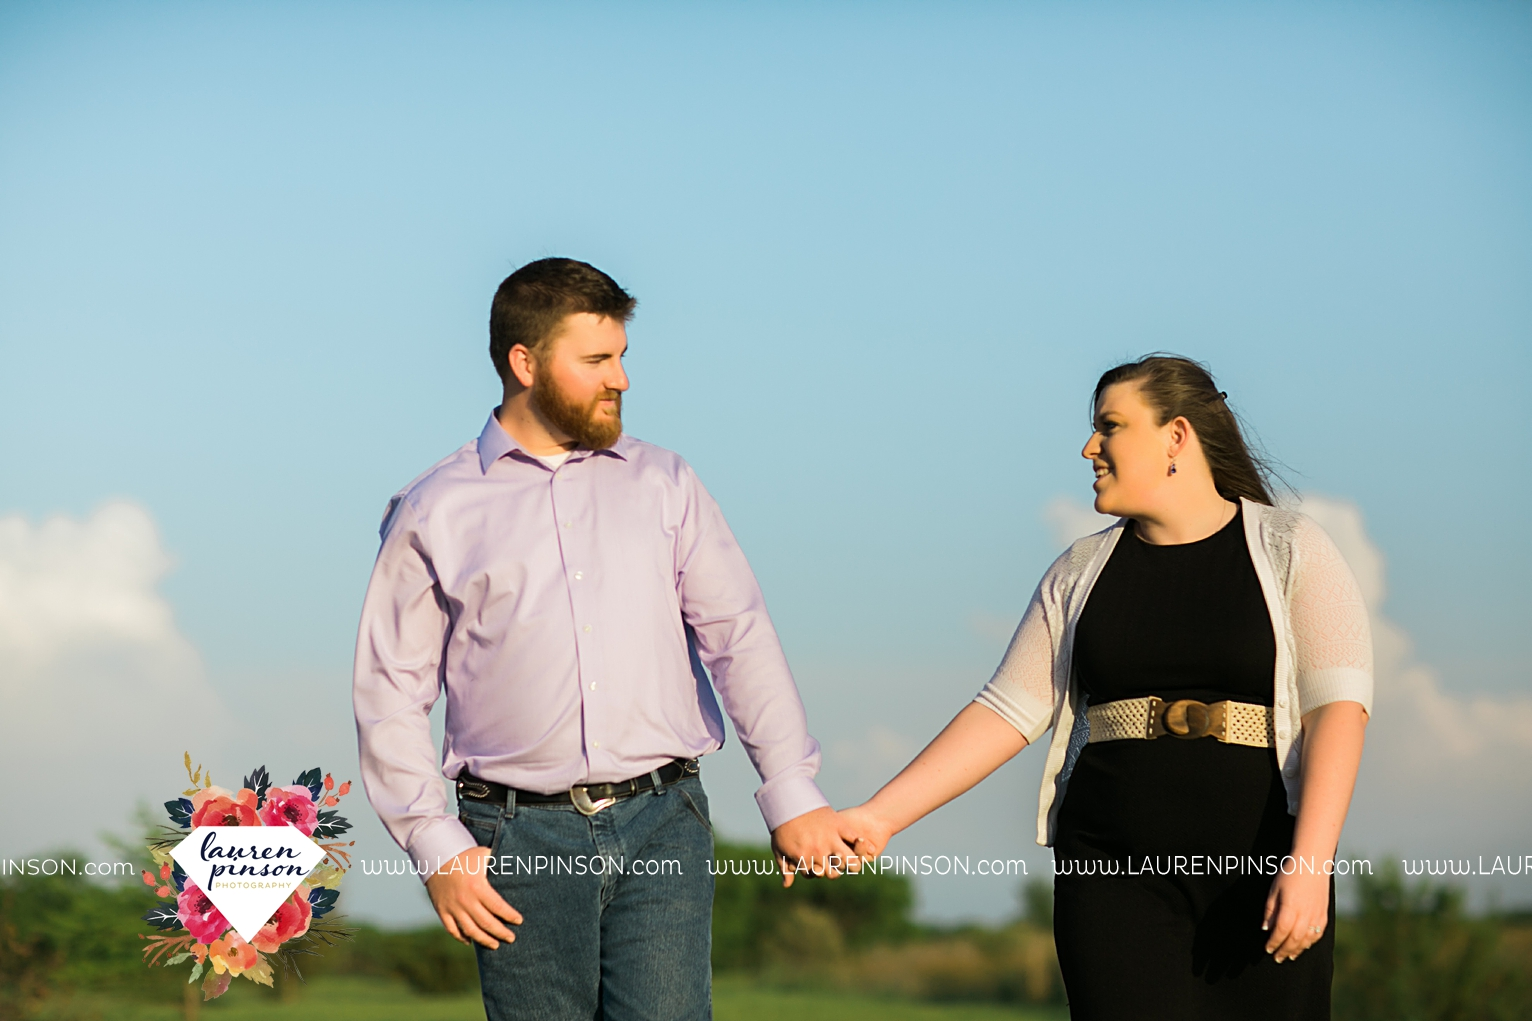 met-on-christian-mingle-texas-engagement-sesion-in-wichita-falls-00011.jpg